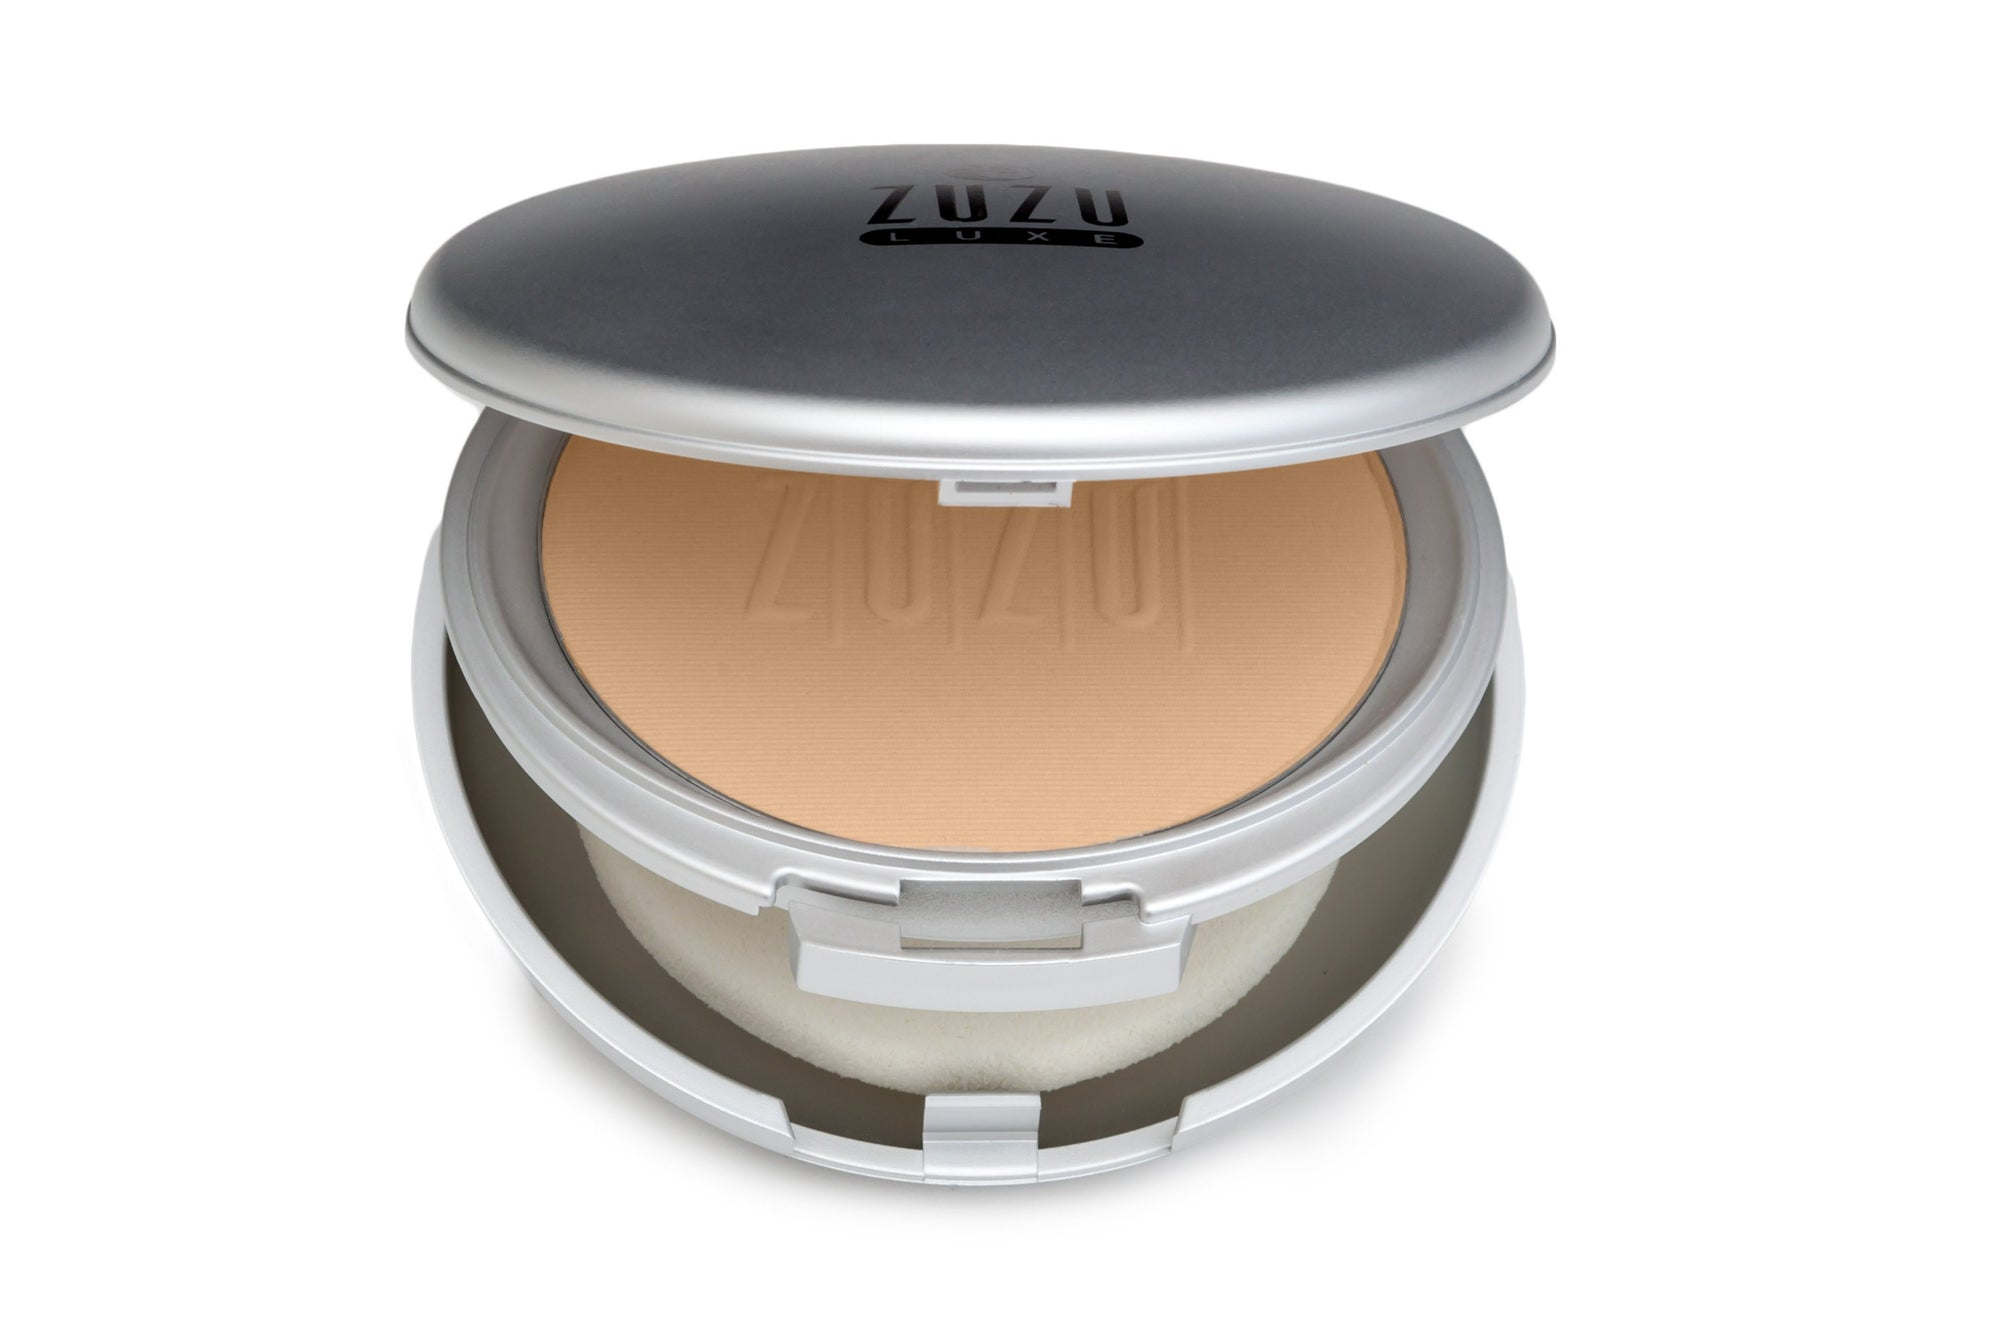 Beauty & Skin Care - Zuzu Luxe - Dual Powder Foundation, D-17